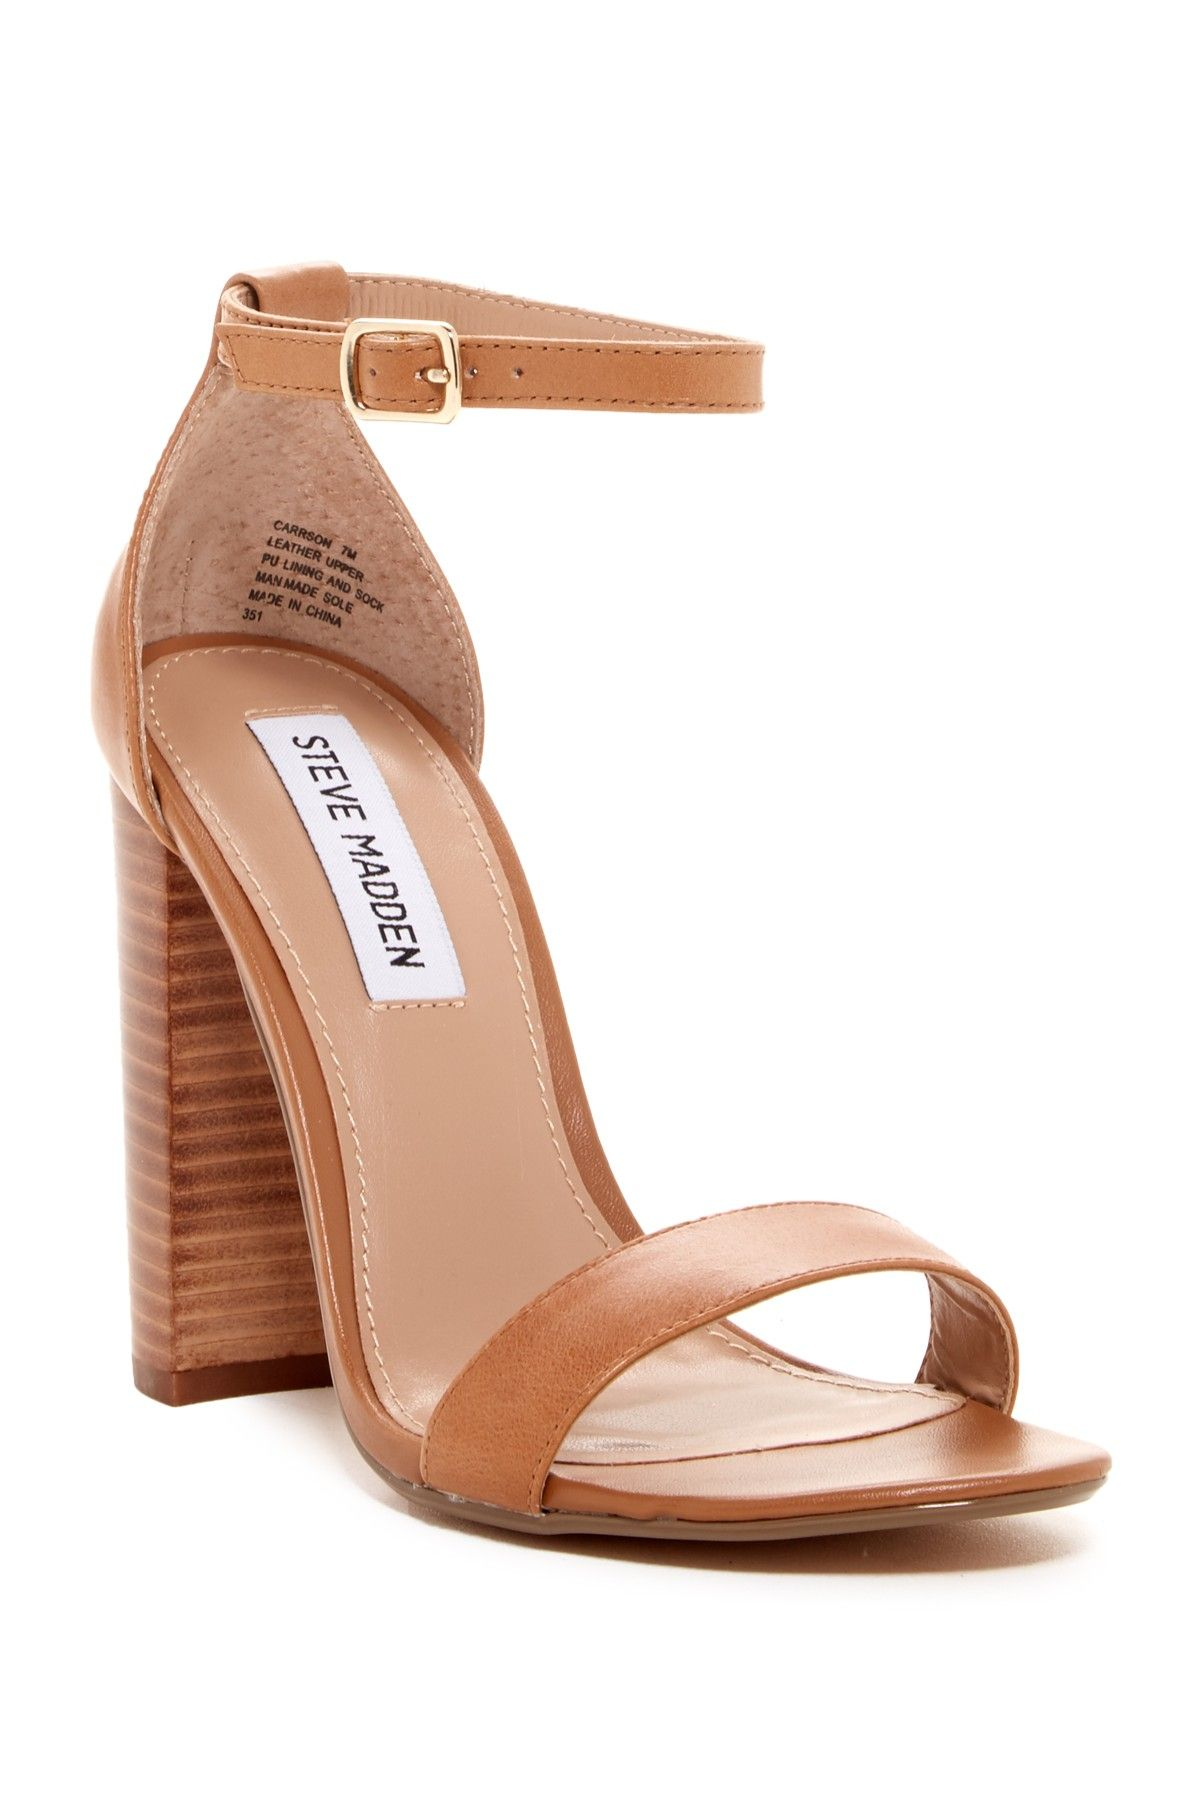 5c4e6d7f3920 An elegant pair of Steve Madden sandals that will go with any work outfit